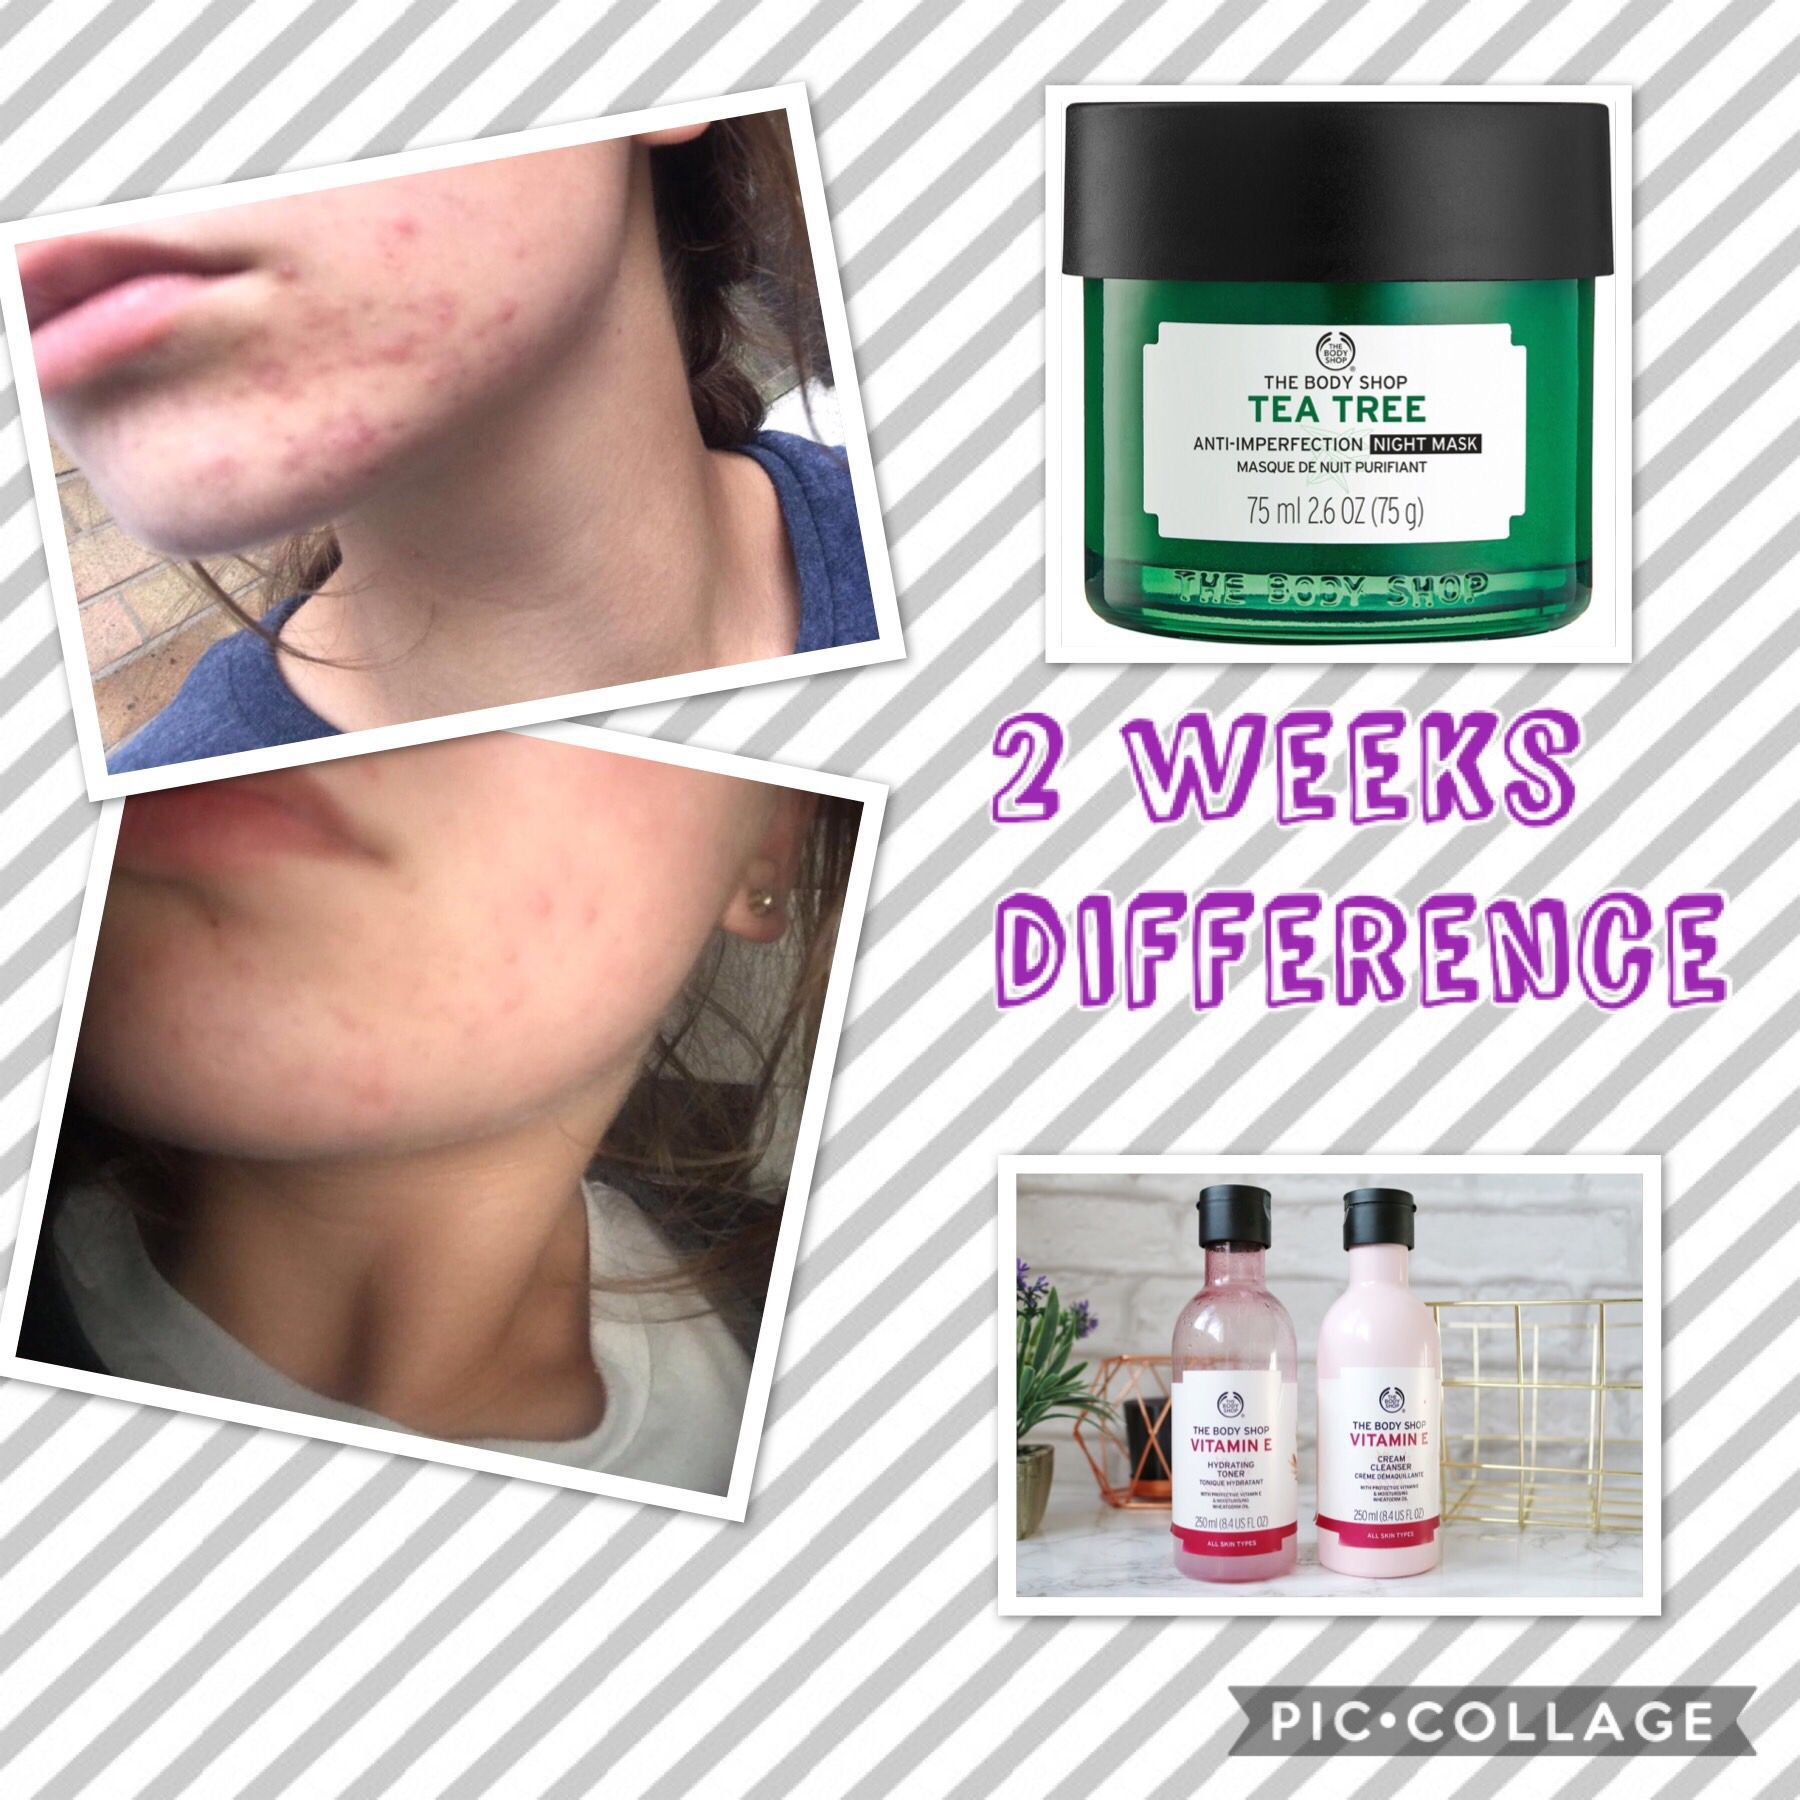 Body Shop Home Customer 2 Weeks Difference Using The Tea Tree Night Mask And Vitamin E Cleaner Toner Body Shop Skincare Body Shop Tea Tree The Body Shop